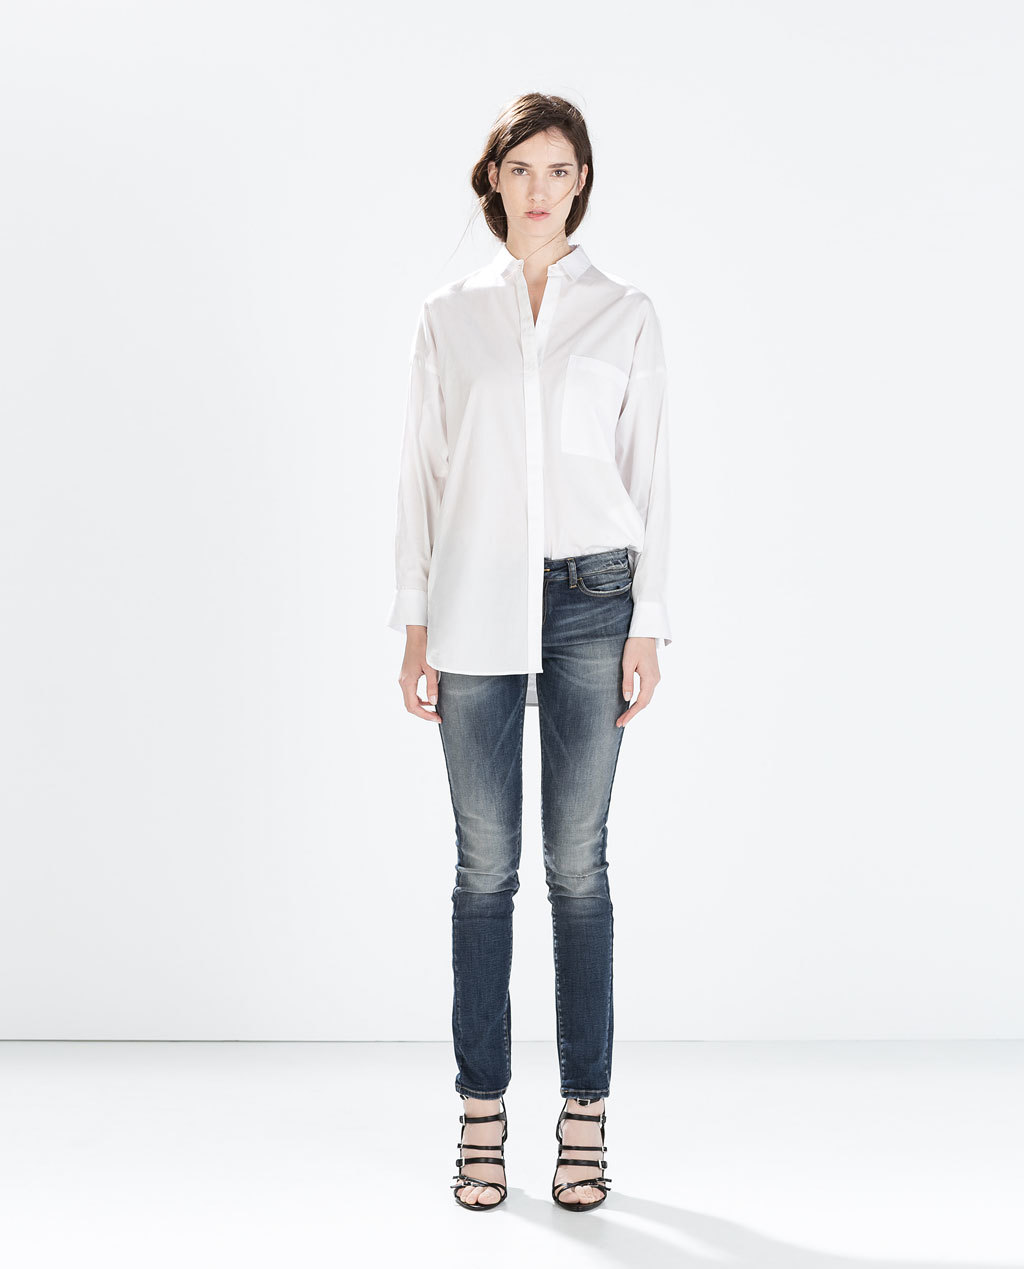 Mid Rise Skinny Jeans - style: skinny leg; length: standard; pattern: plain; pocket detail: traditional 5 pocket; waist: mid/regular rise; predominant colour: navy; occasions: casual, evening; fibres: cotton - stretch; jeans detail: shading down centre of thigh; texture group: denim; pattern type: fabric; season: a/w 2014